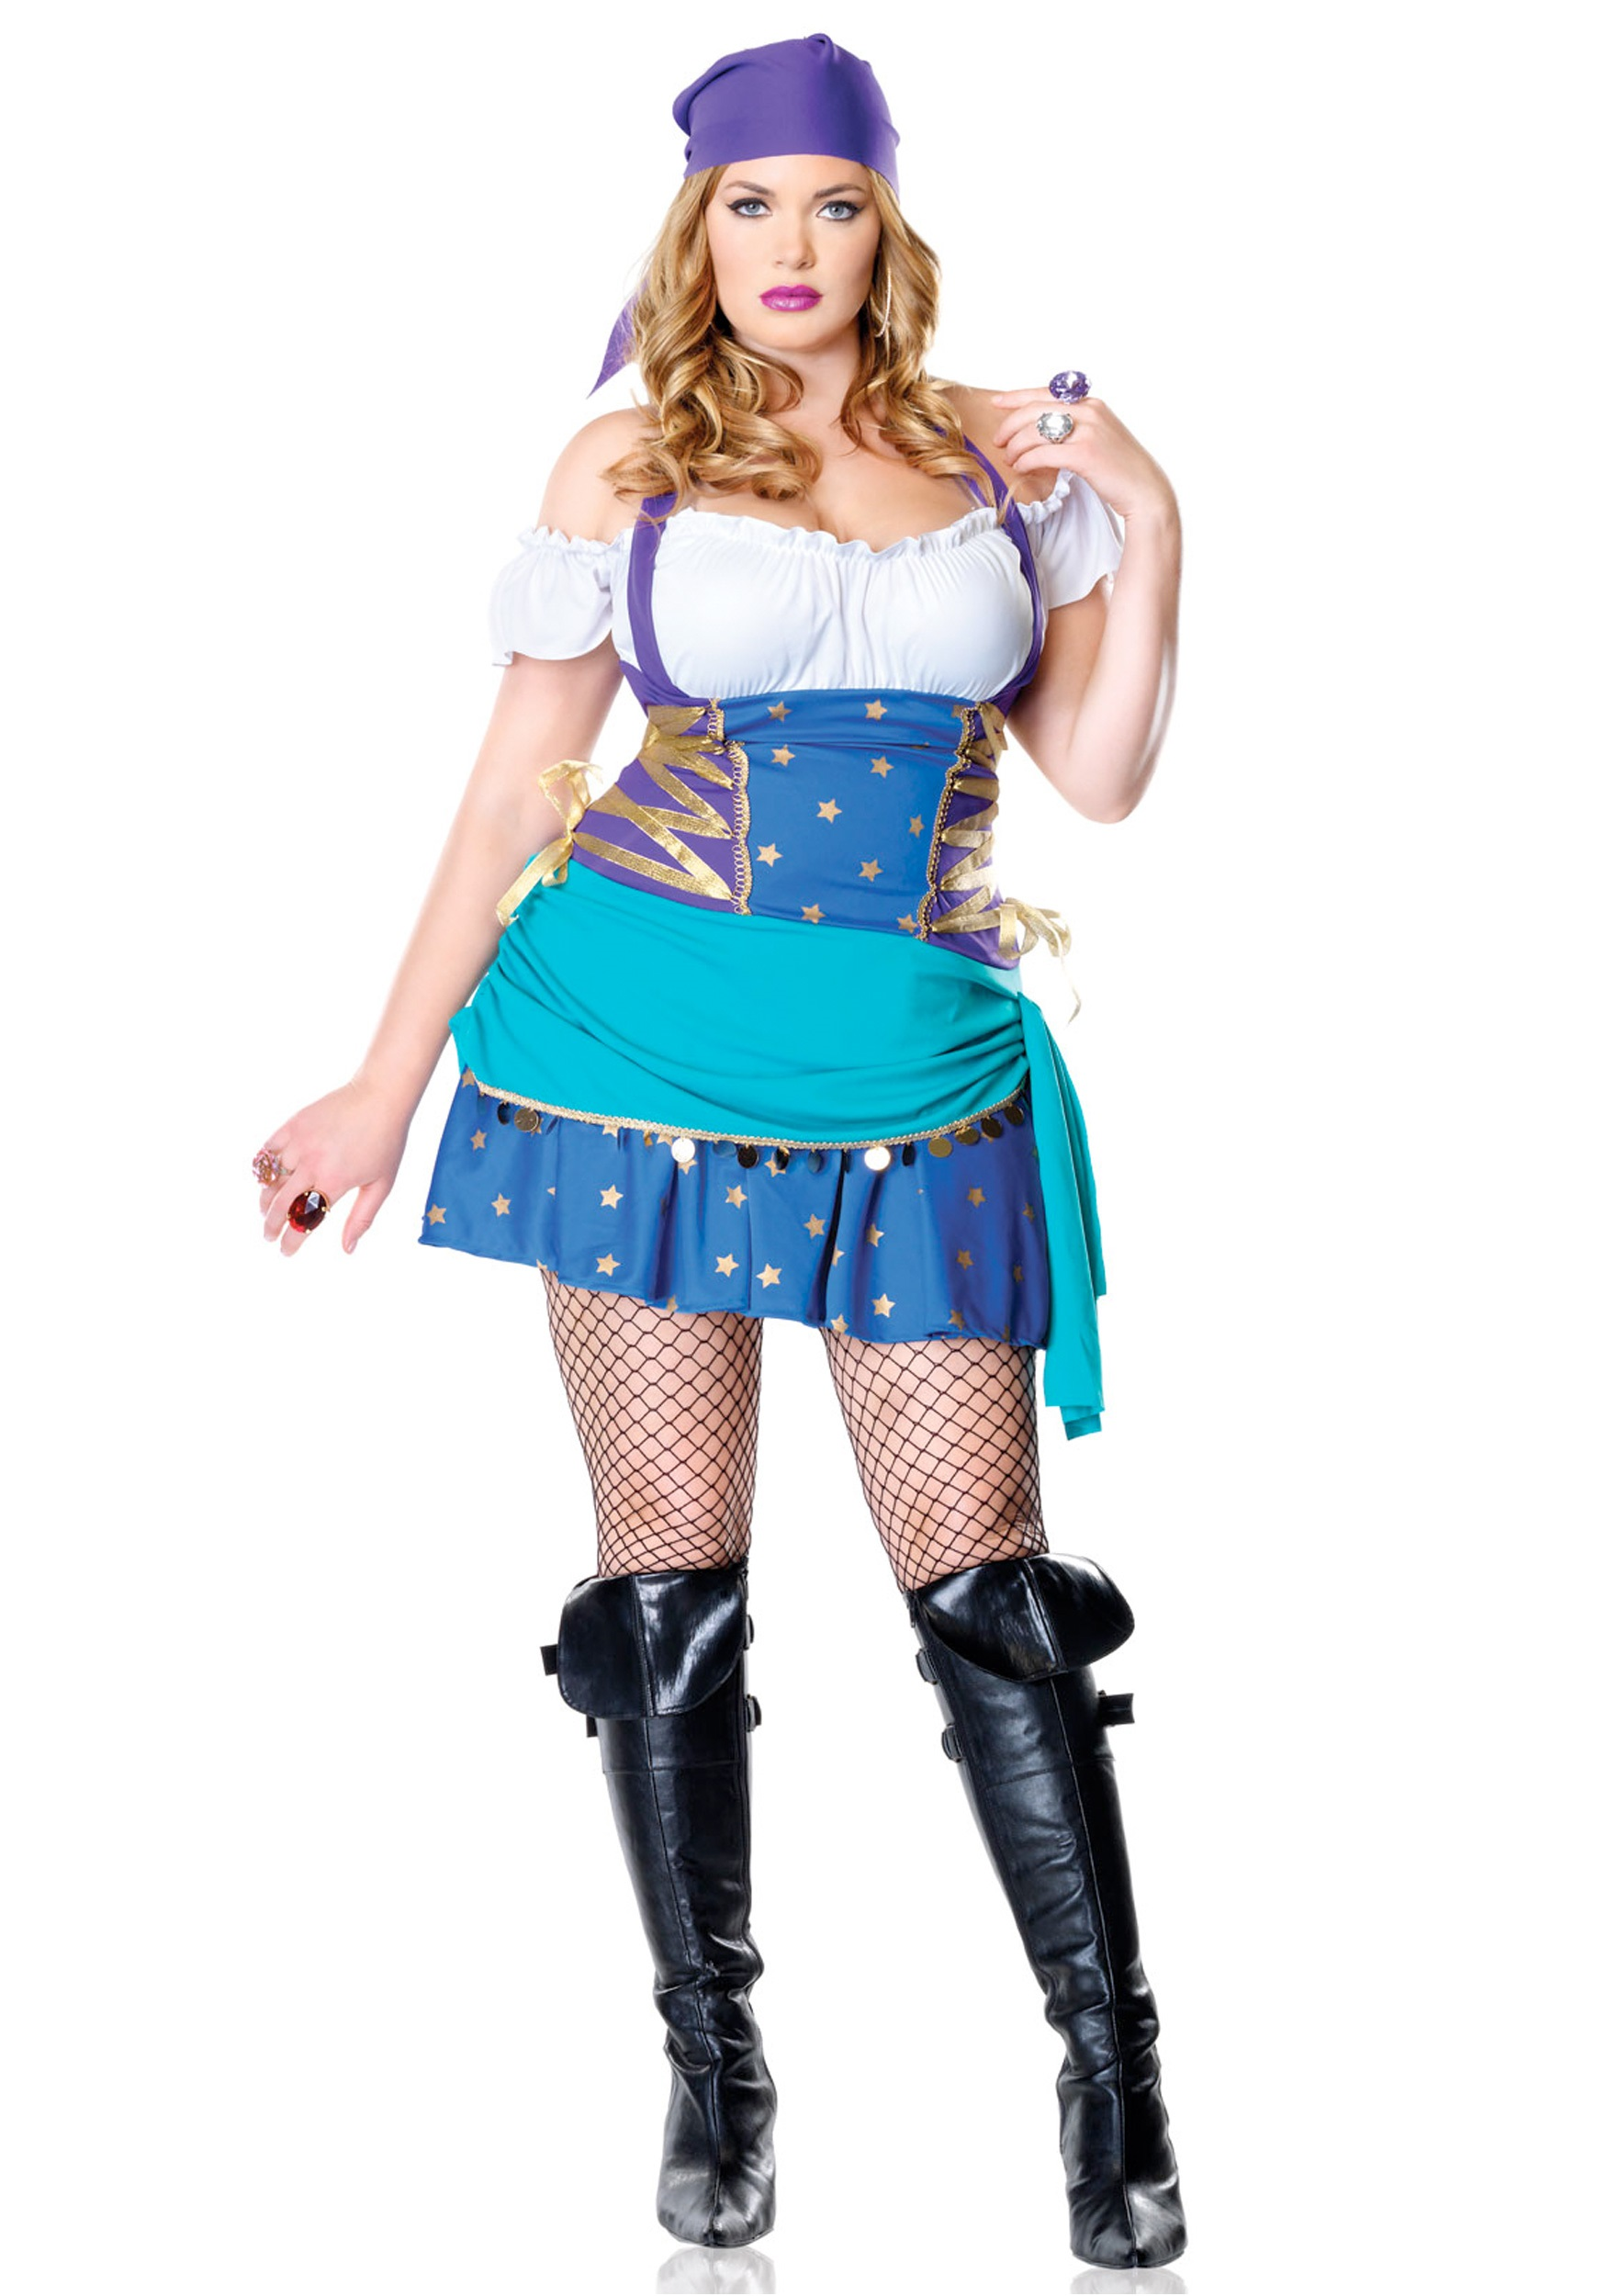 Gypsy Diva Halloween Costume, Sexy Gypsy Outfit